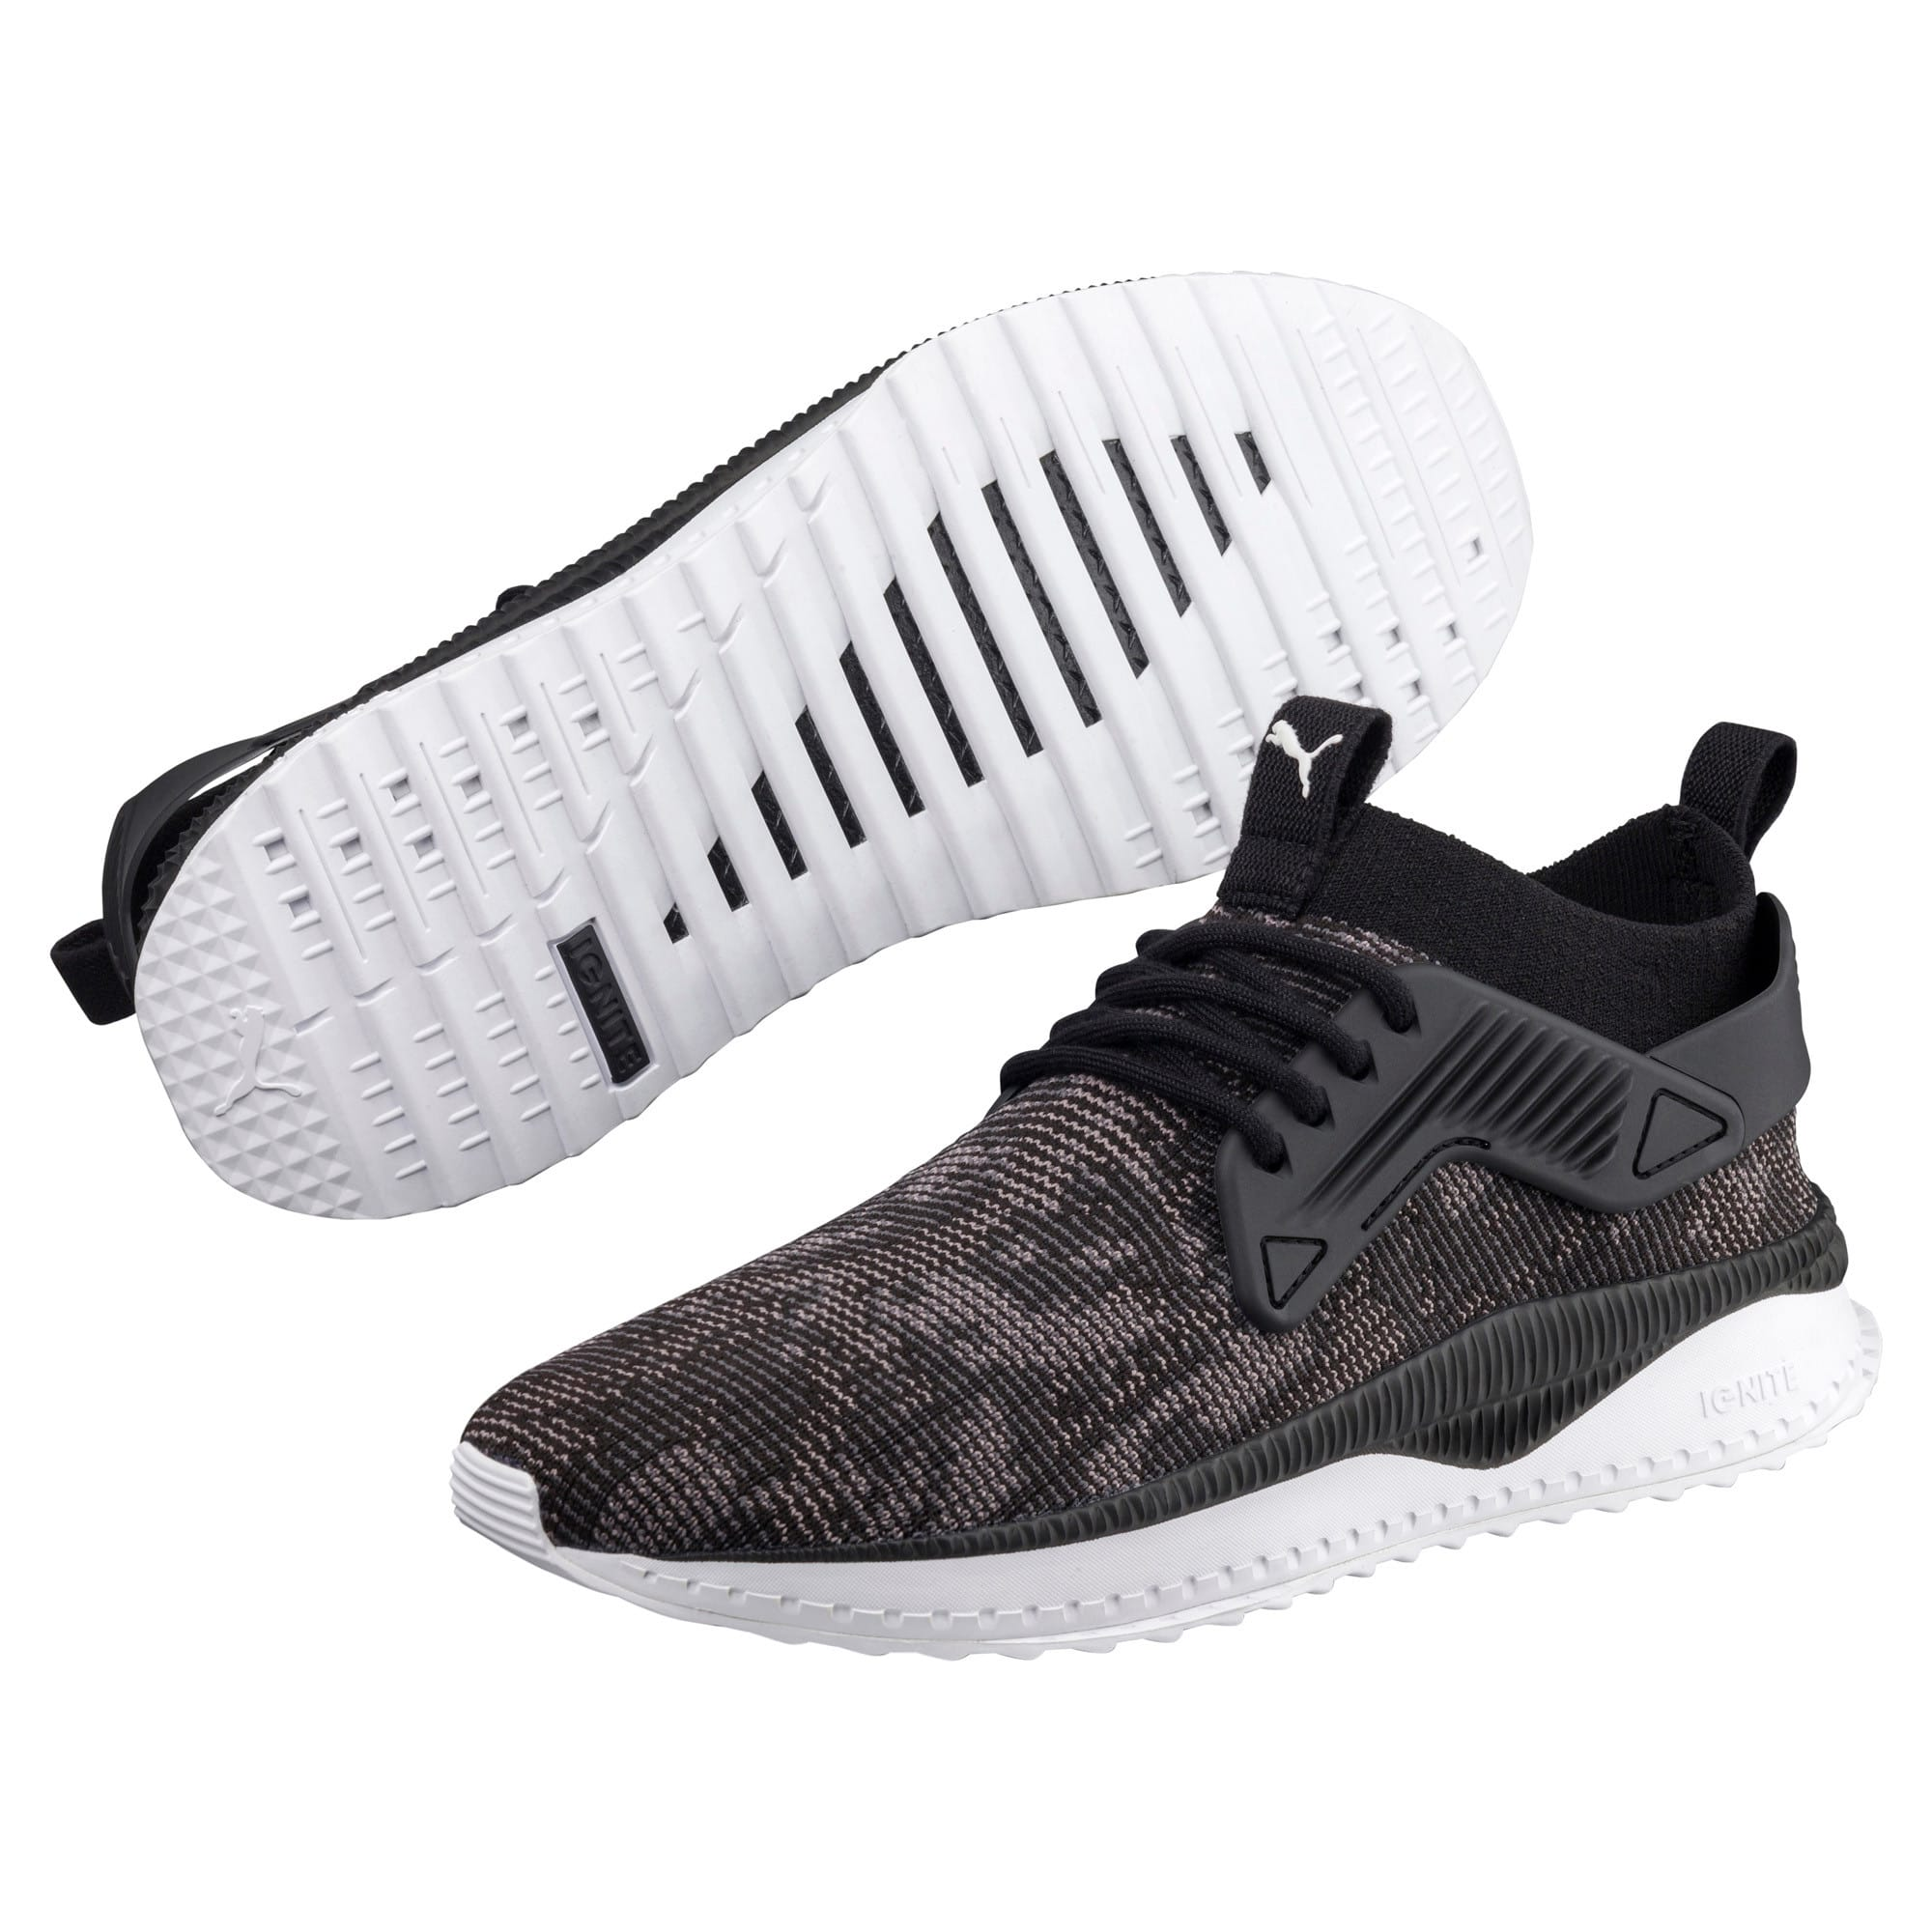 Thumbnail 2 of TSUGI Cage evoKNIT WF Trainers, Puma Black-Puma White-, medium-IND